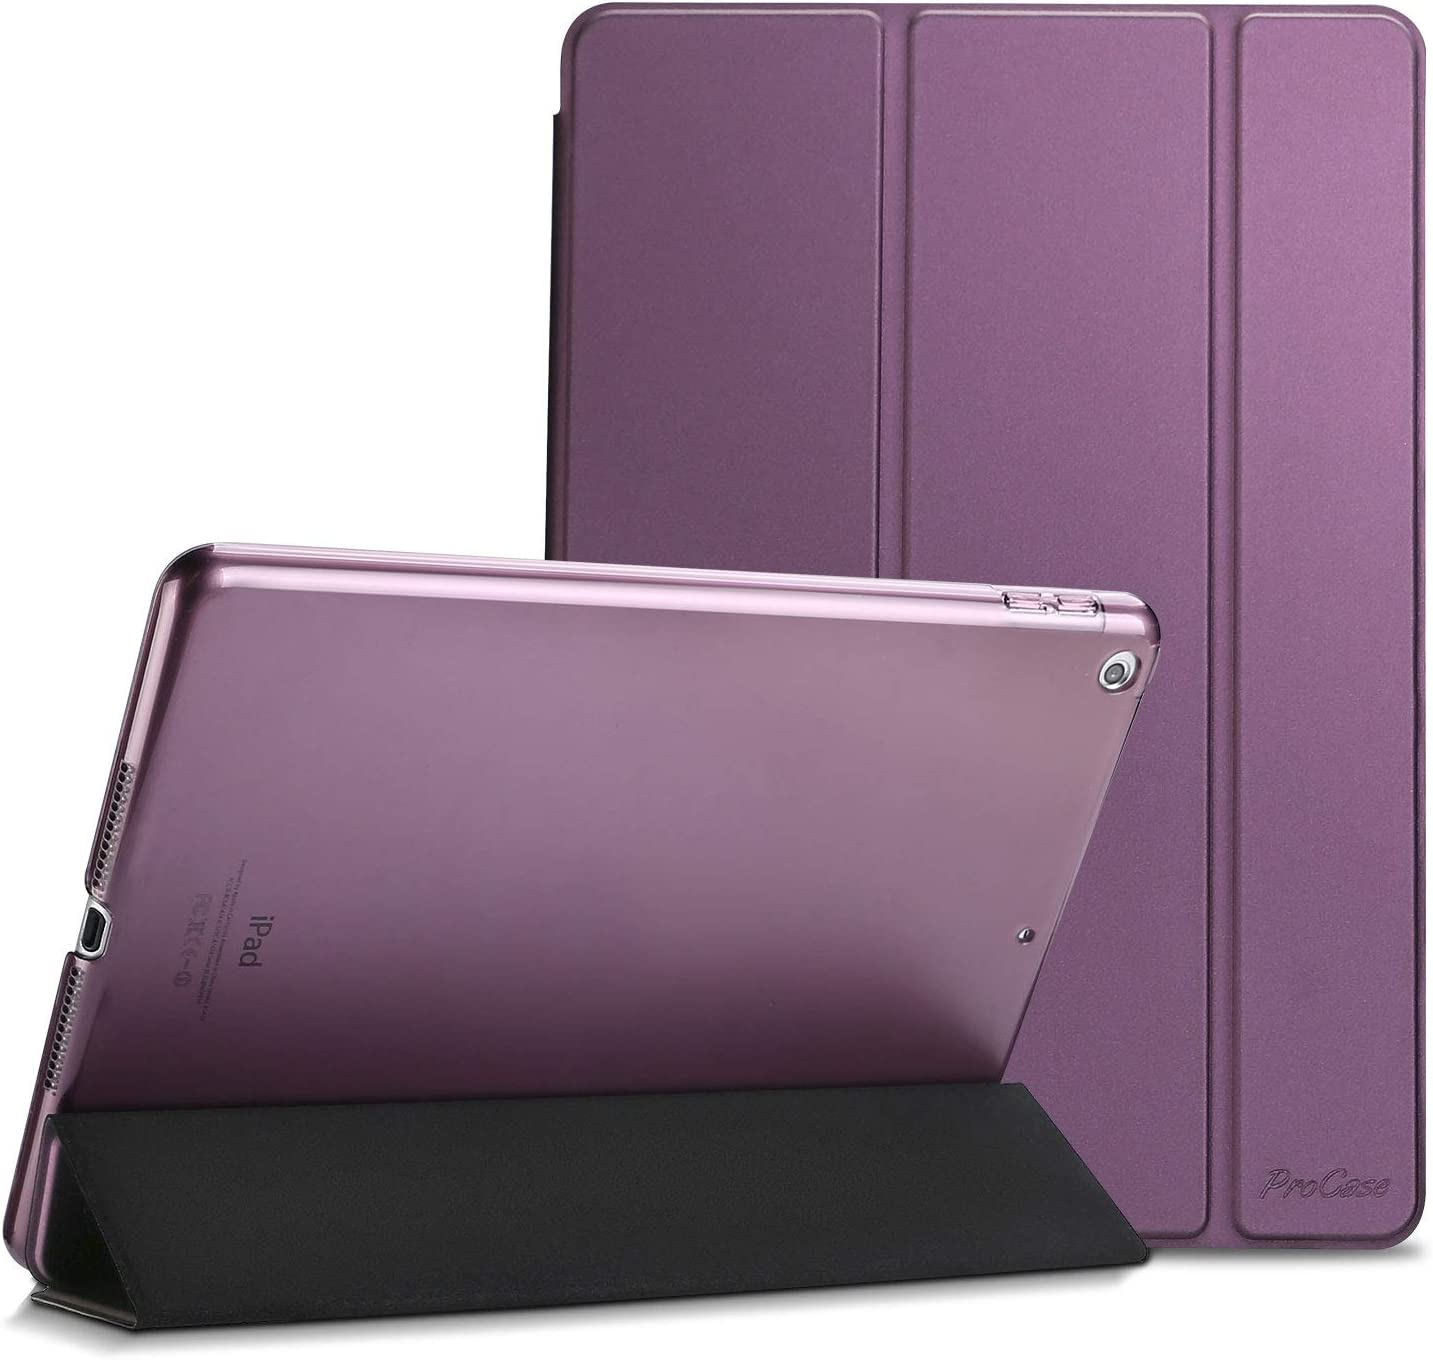 ProCase iPad 9.7 Case 2018 iPad 6th Generation Case / 2017 iPad 5th Generation Case - Ultra Slim Lightweight Stand Case with Translucent Frosted Back Smart Cover for Apple iPad 9.7 Inch –Purple